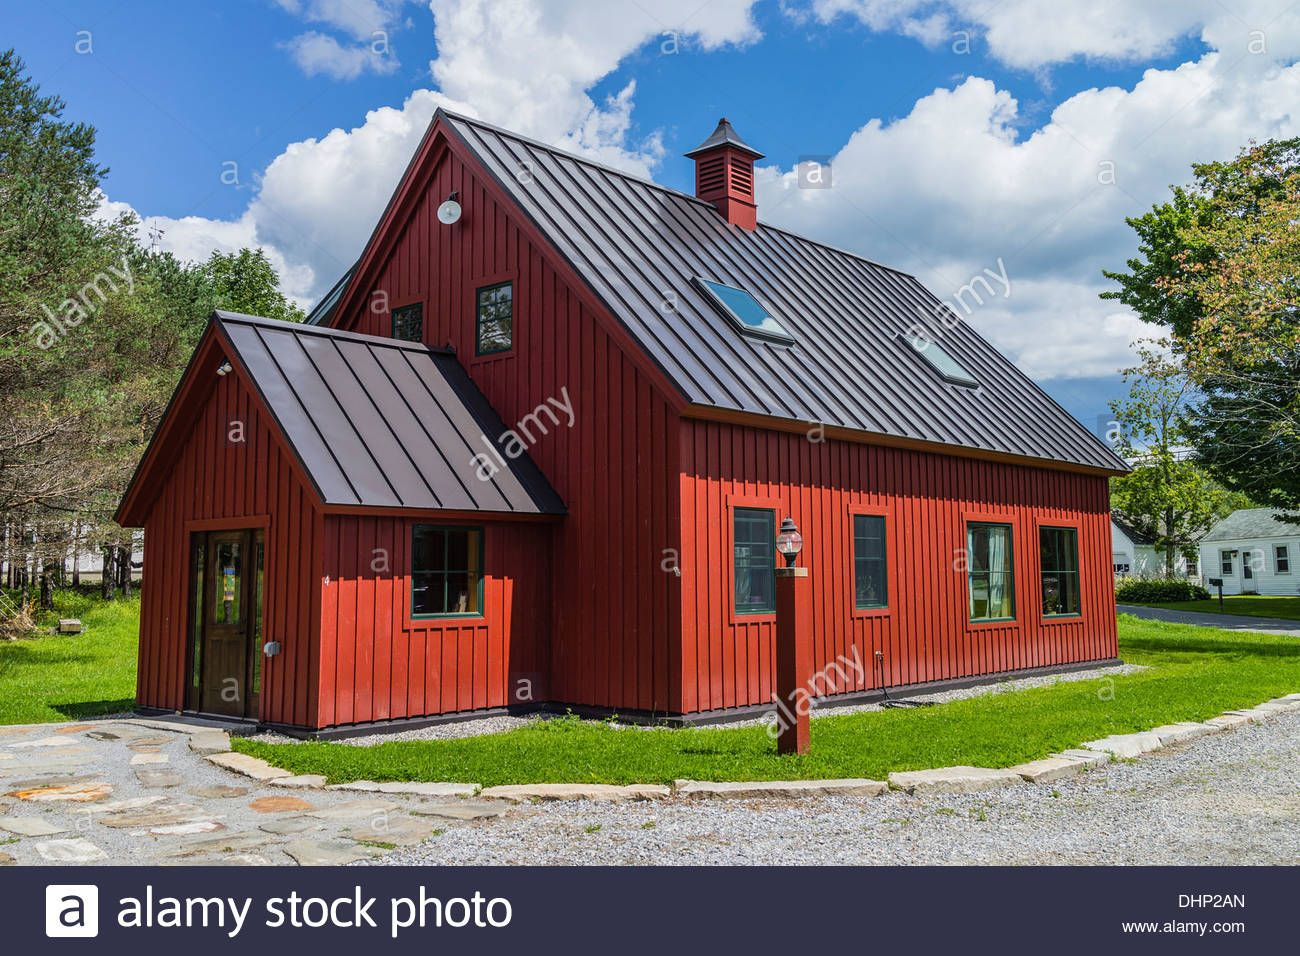 Best Download This Stock Image A Red Wooden Board And Batten 400 x 300